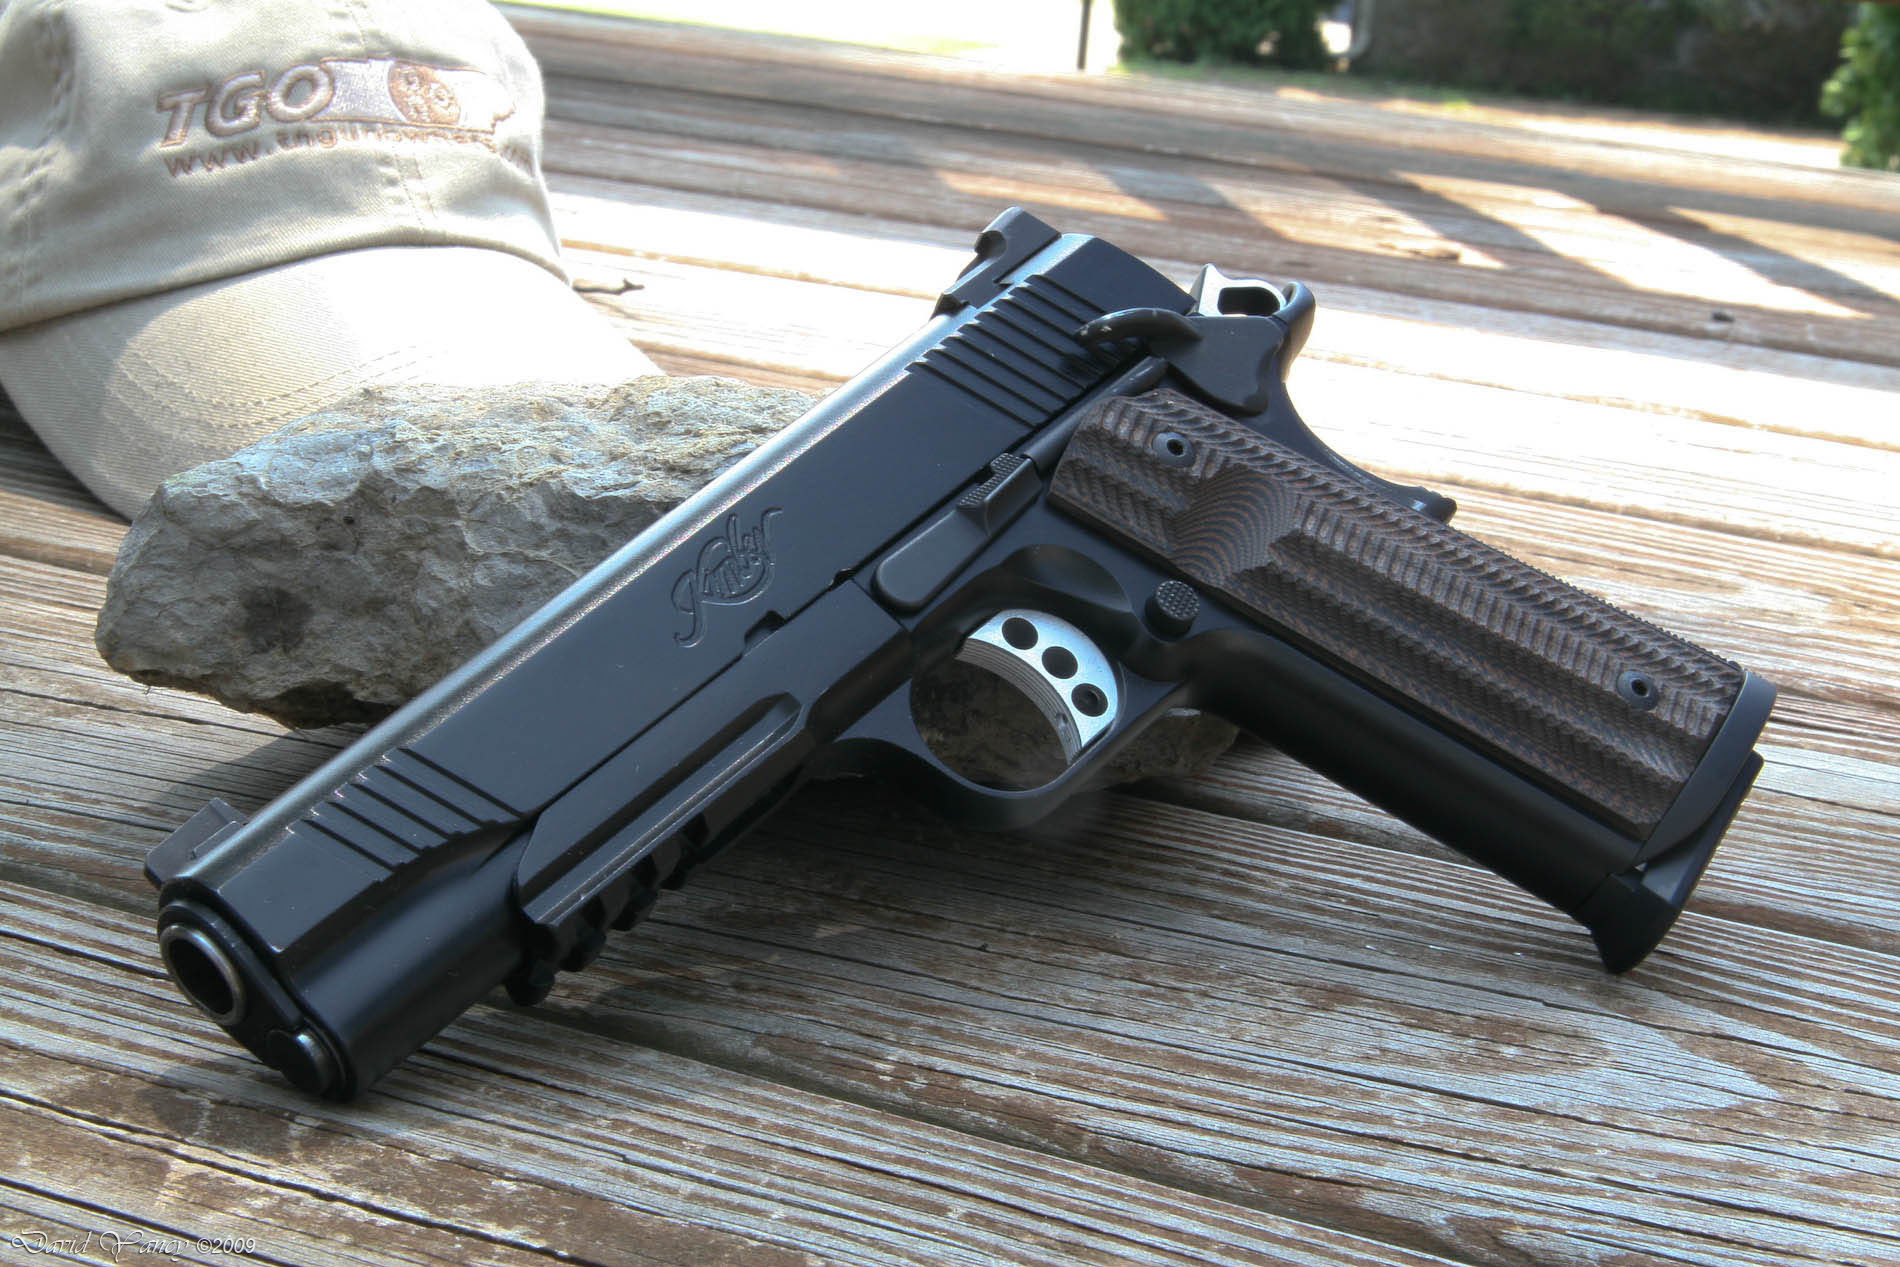 Kimber Wallpaper For Iphone Or Other Mobile Device 1911forum 1900x1267